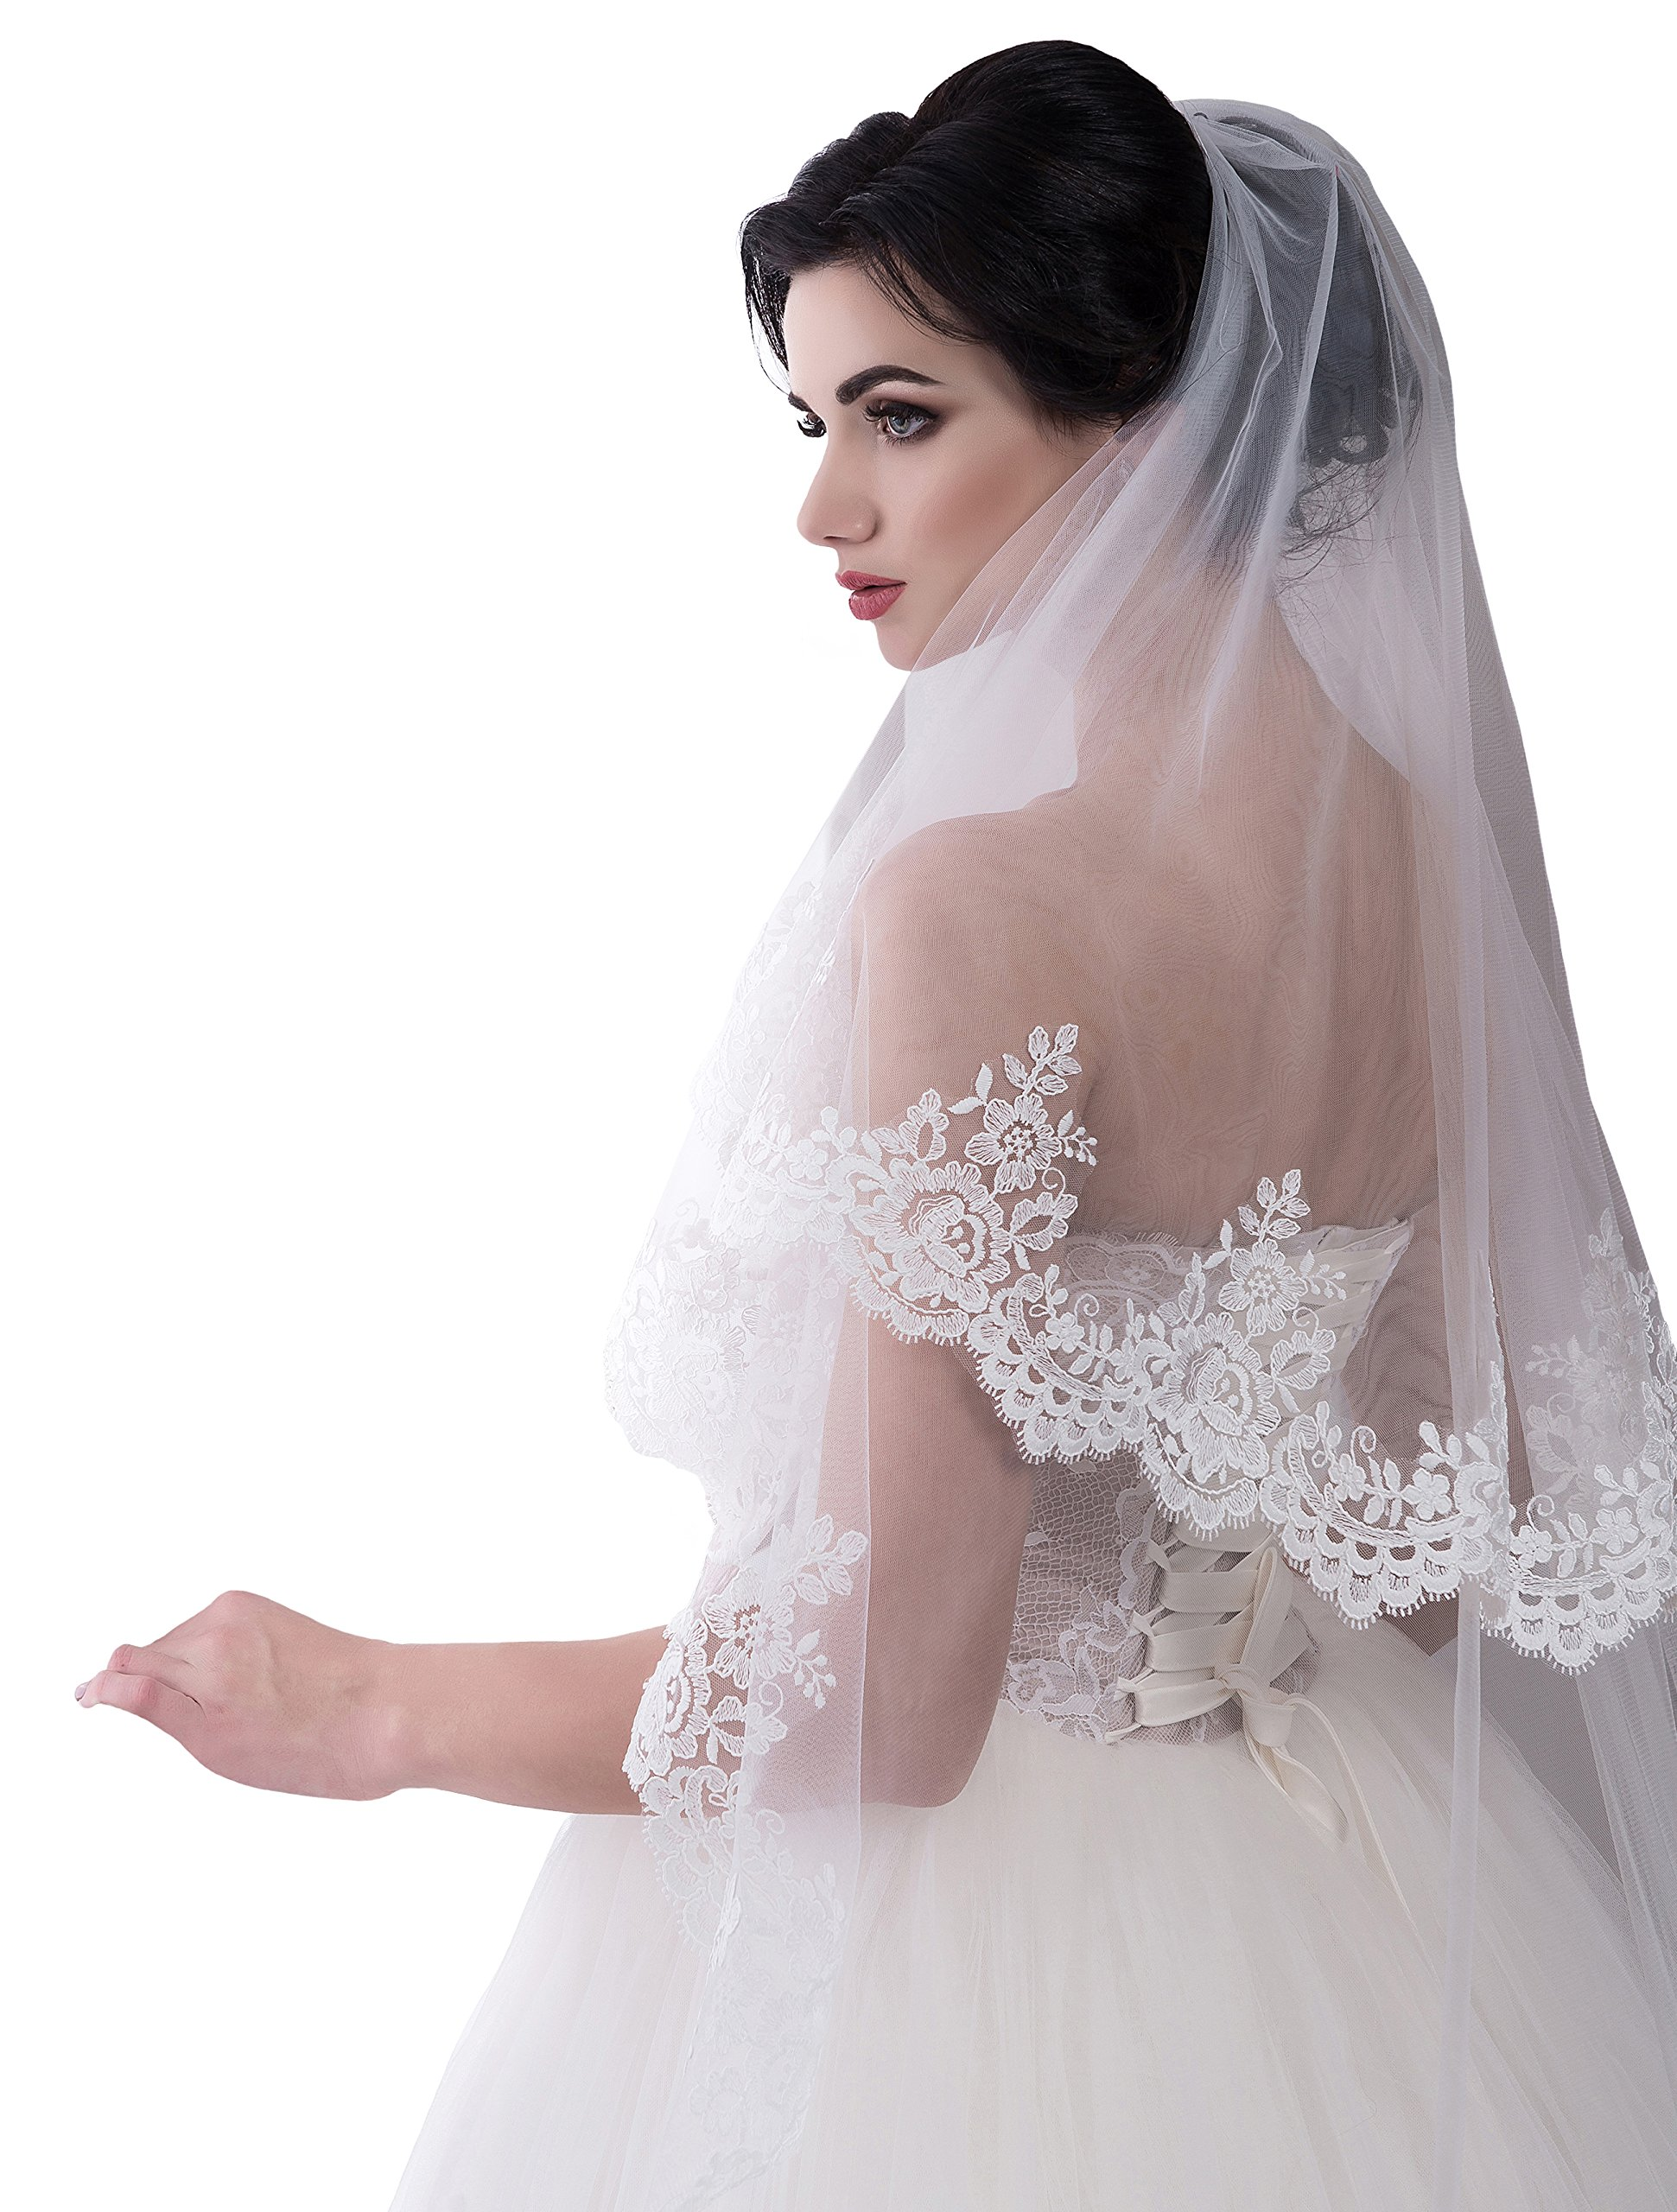 Bridal Veil Sienna from NYC Bride collection (short 30'', white)